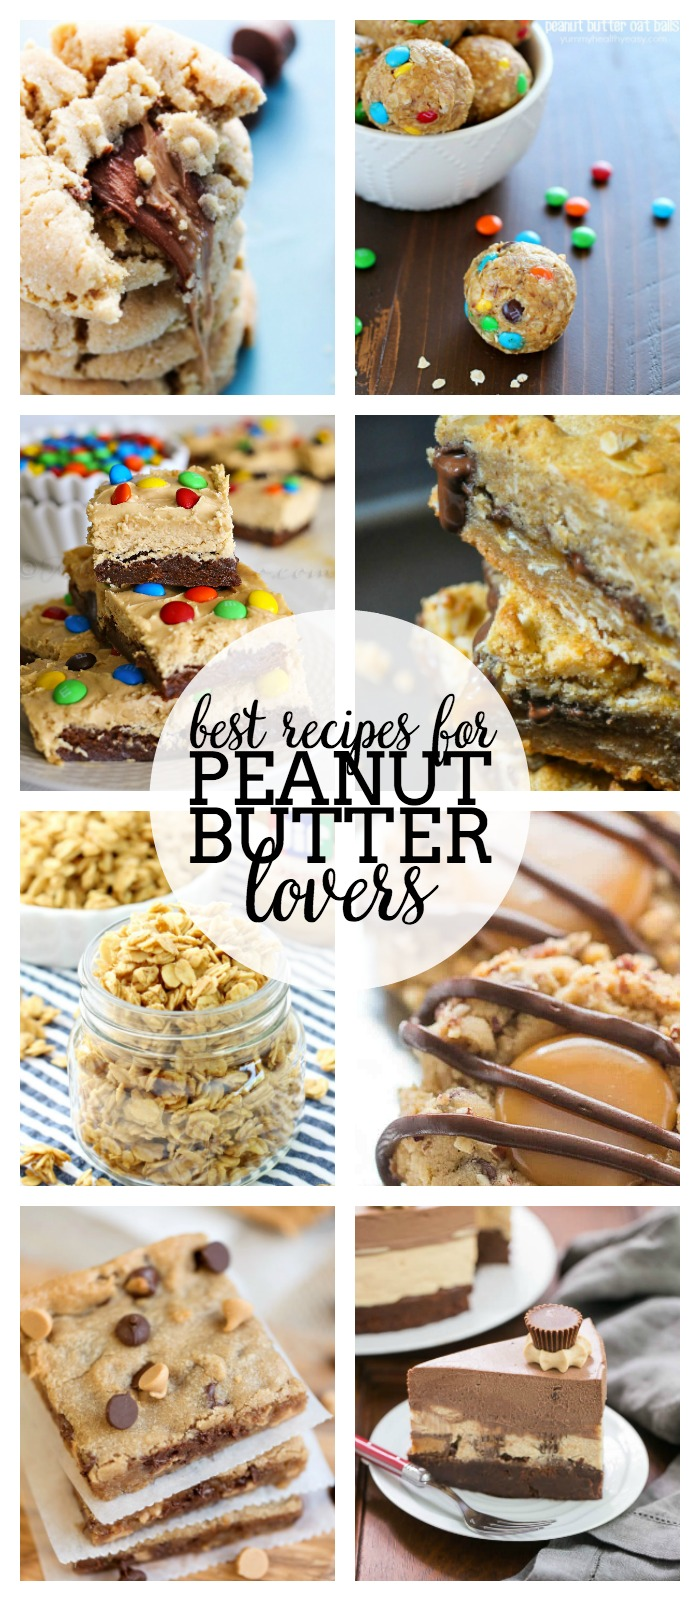 The Best Recipes for Peanut Butter Lovers - If you or your family love peanut butter, you don't want to miss this recipe collection! We are sharing peanut butter recipes for breakfast, dinner, and dessert!! | The Love Nerds